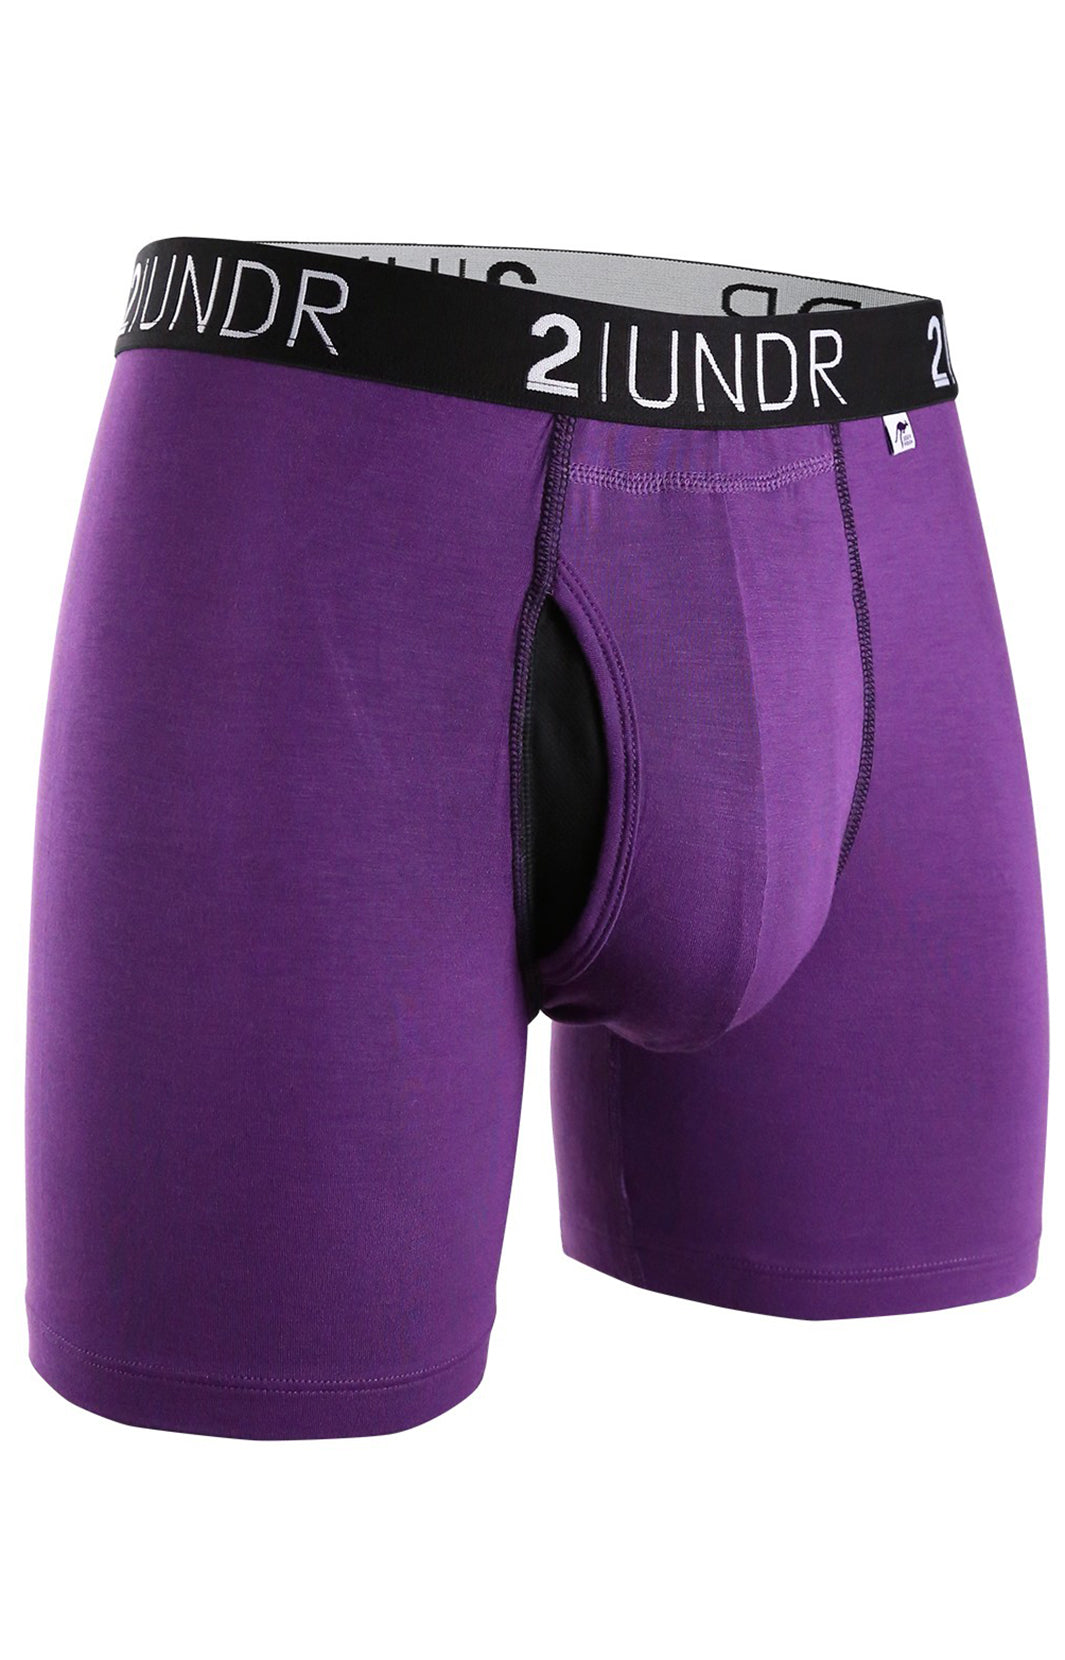 "SWING SHIFT 6"" BOXER BRIEF - PURPLE"